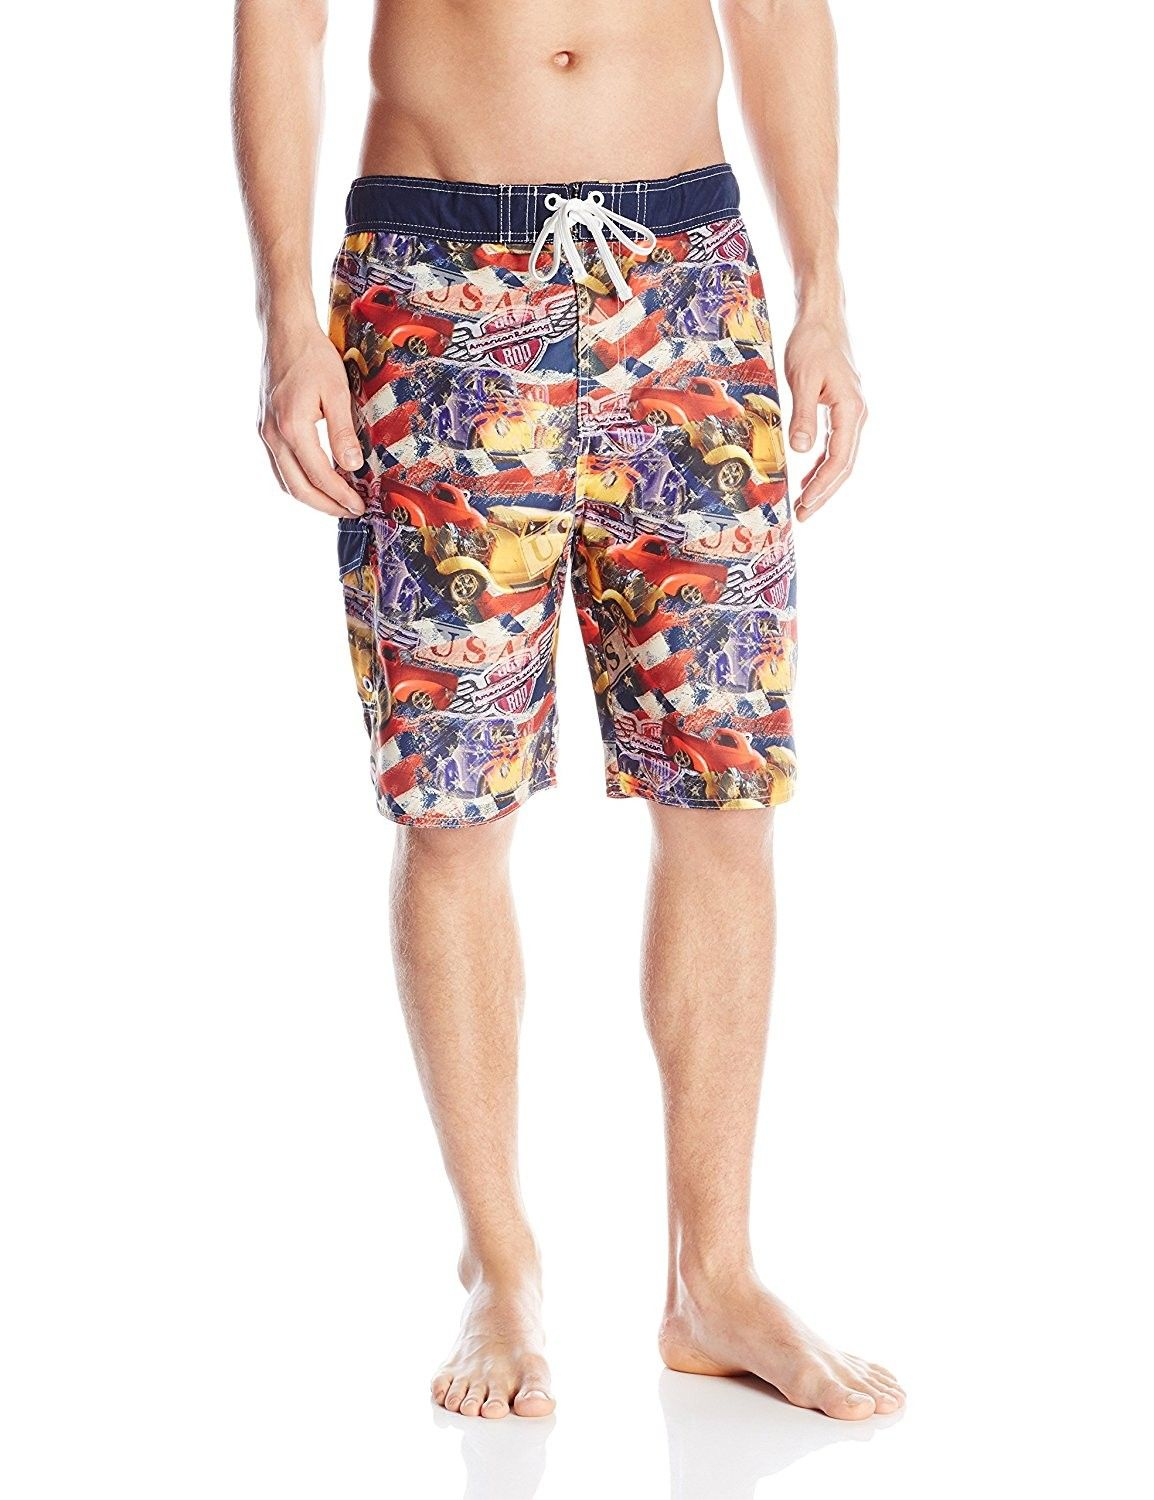 558fe42117 Men's Hot Rod USA Swim Trunks - Navy - C912C4BJ15T,Men's Clothing, Swim,  Trunks #men #clothing #fashion #style #gifts #outfits #Trunks